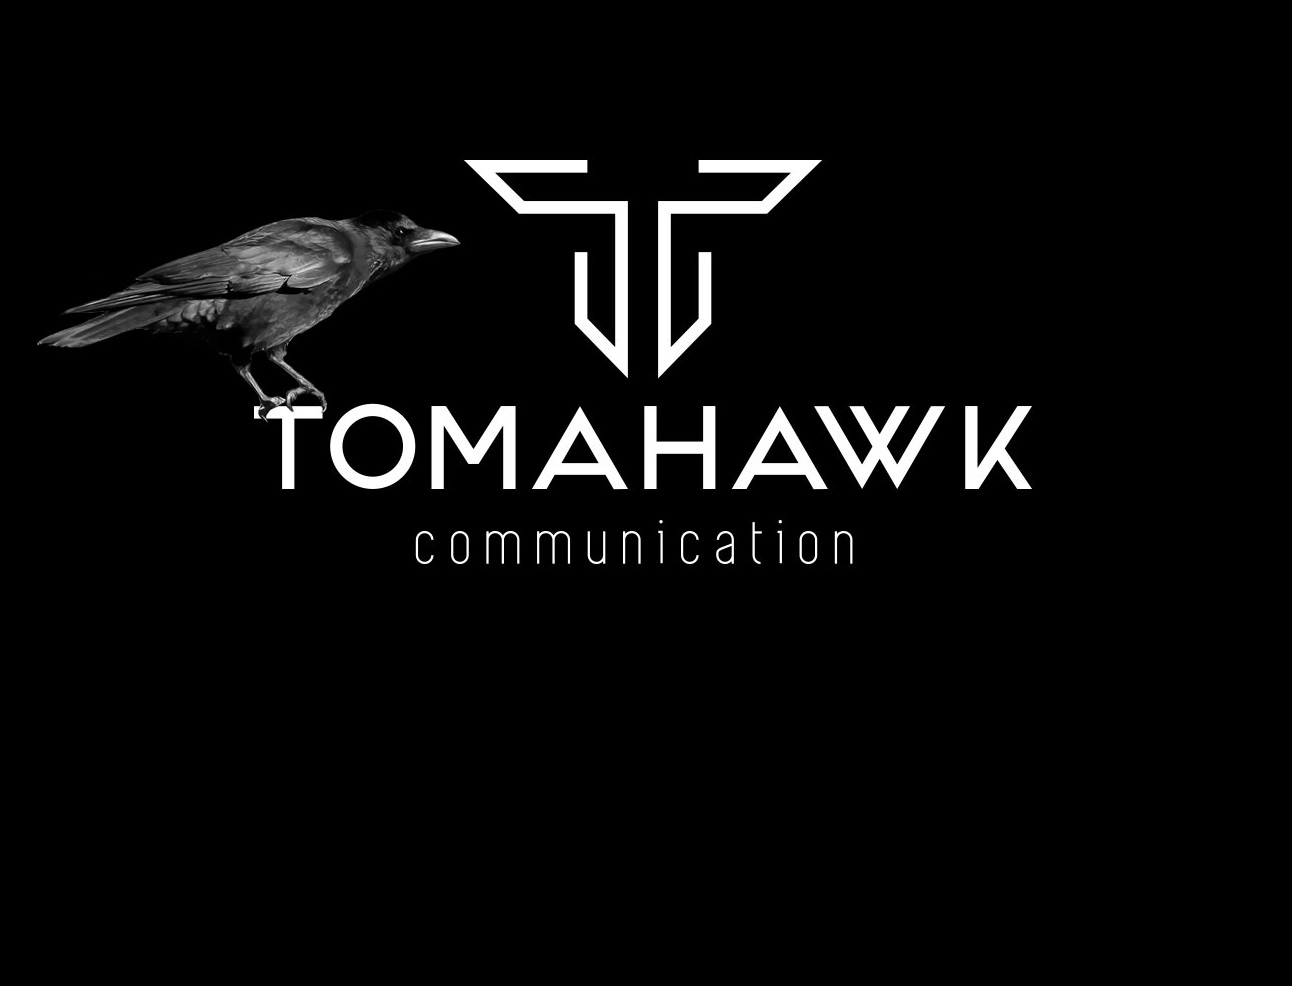 Tomahawk-communication-logo-corbeau-m-